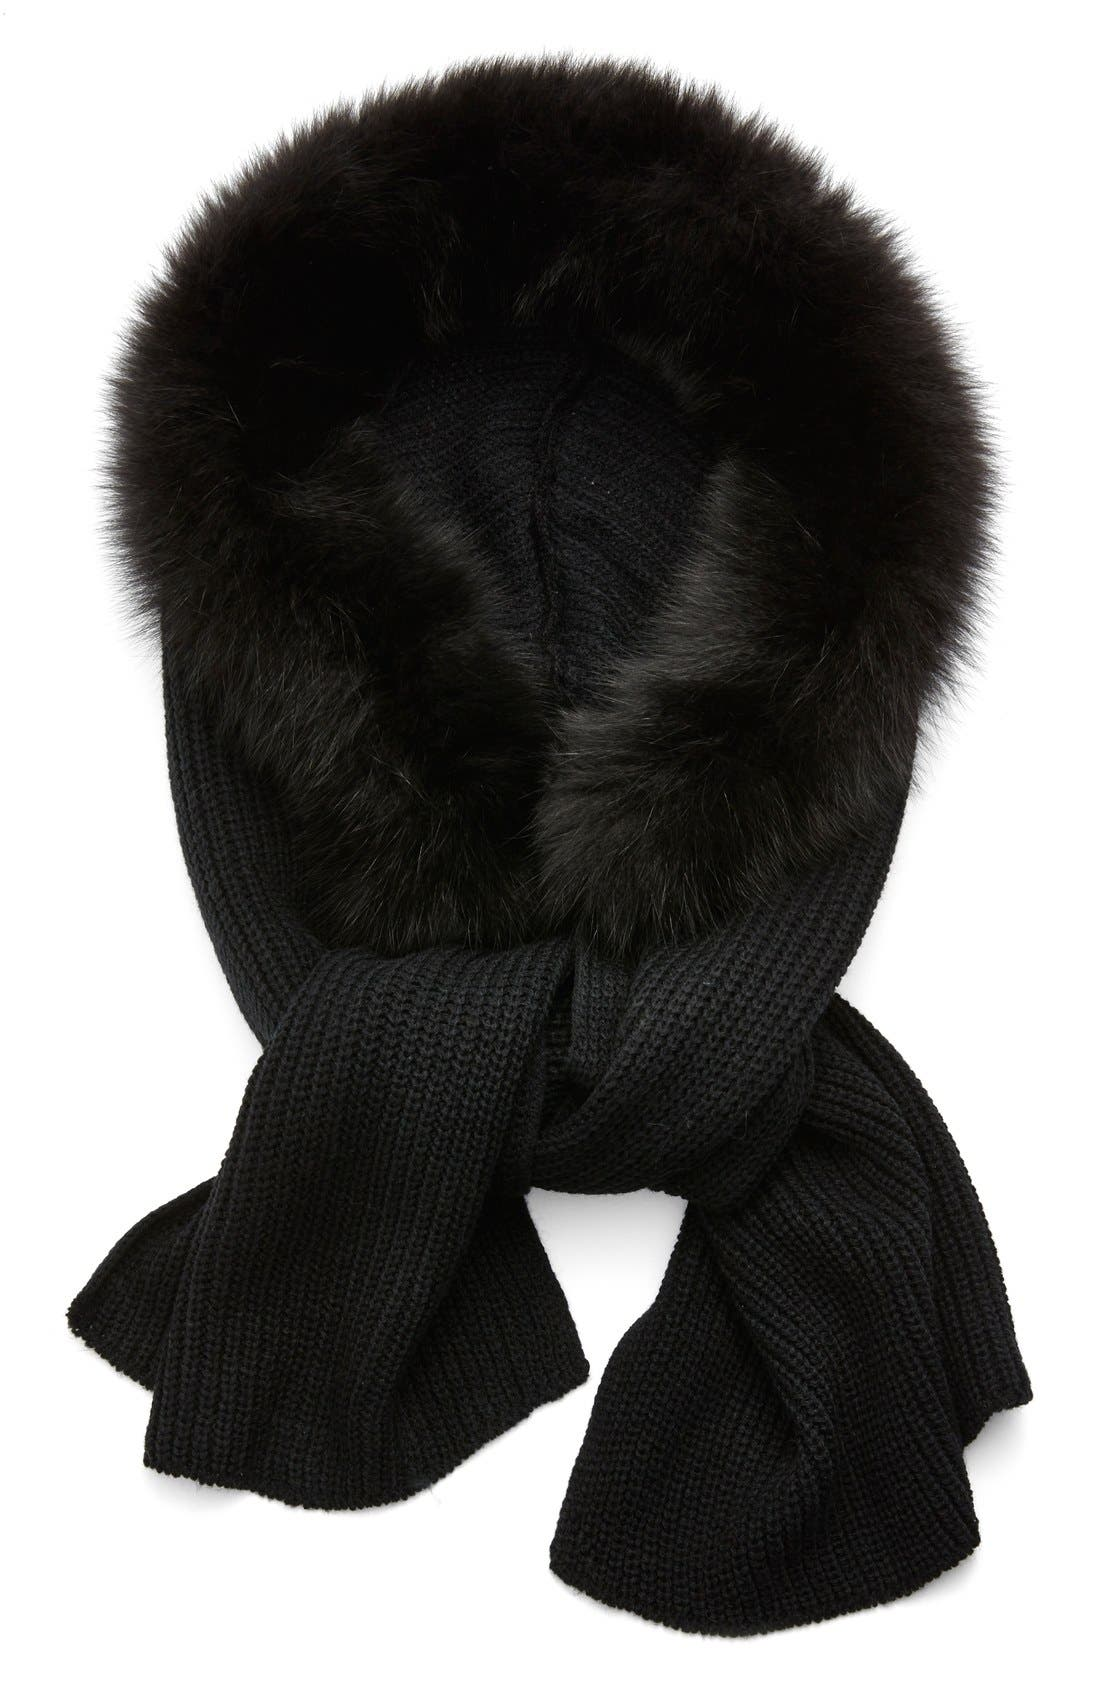 Hooded Scarf with Genuine Fox Fur Trim,                             Main thumbnail 1, color,                             001